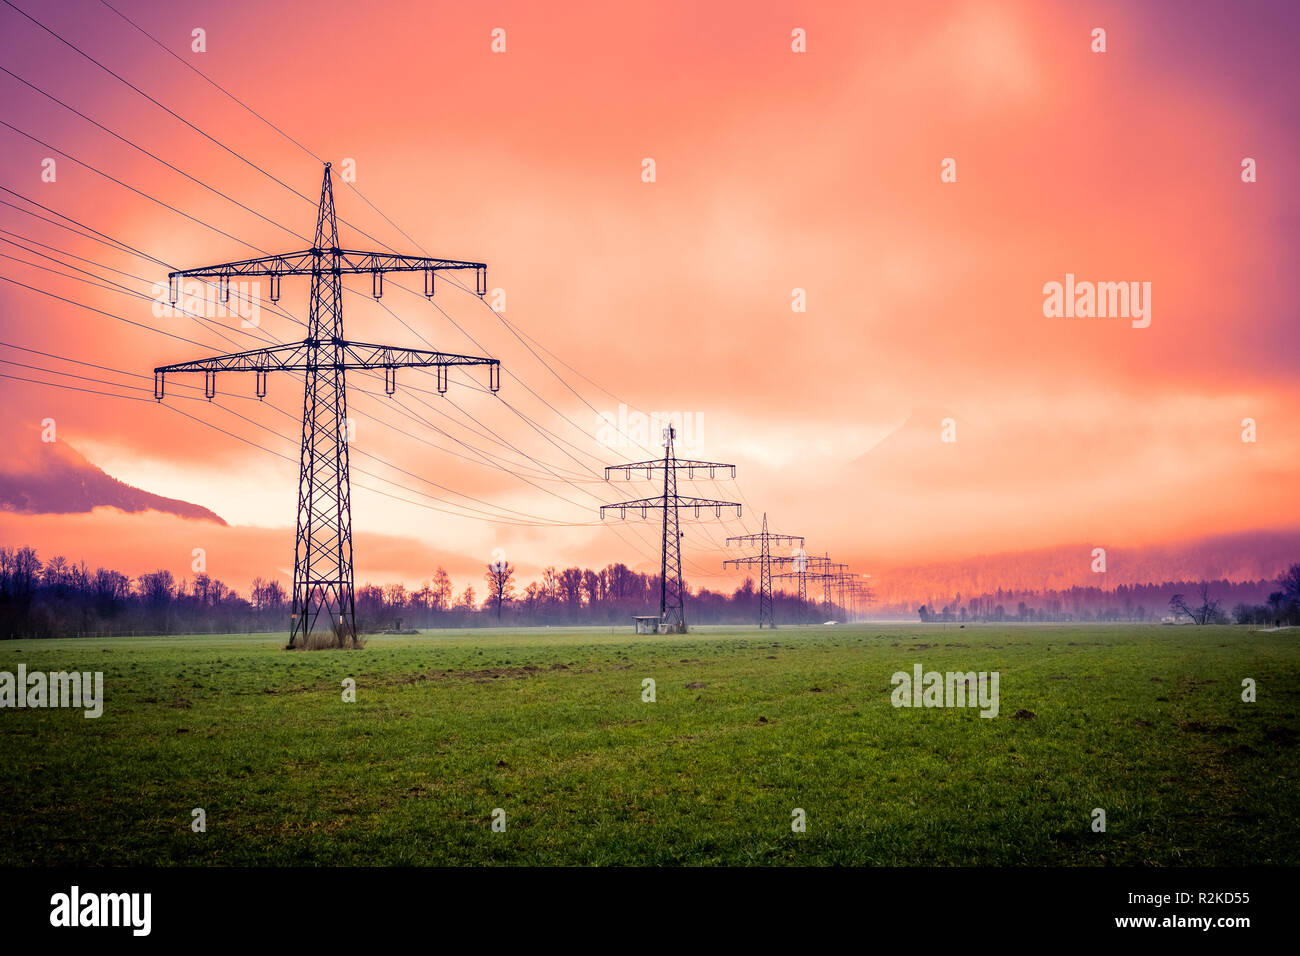 power lines, electricity, energy crisis - Stock Image